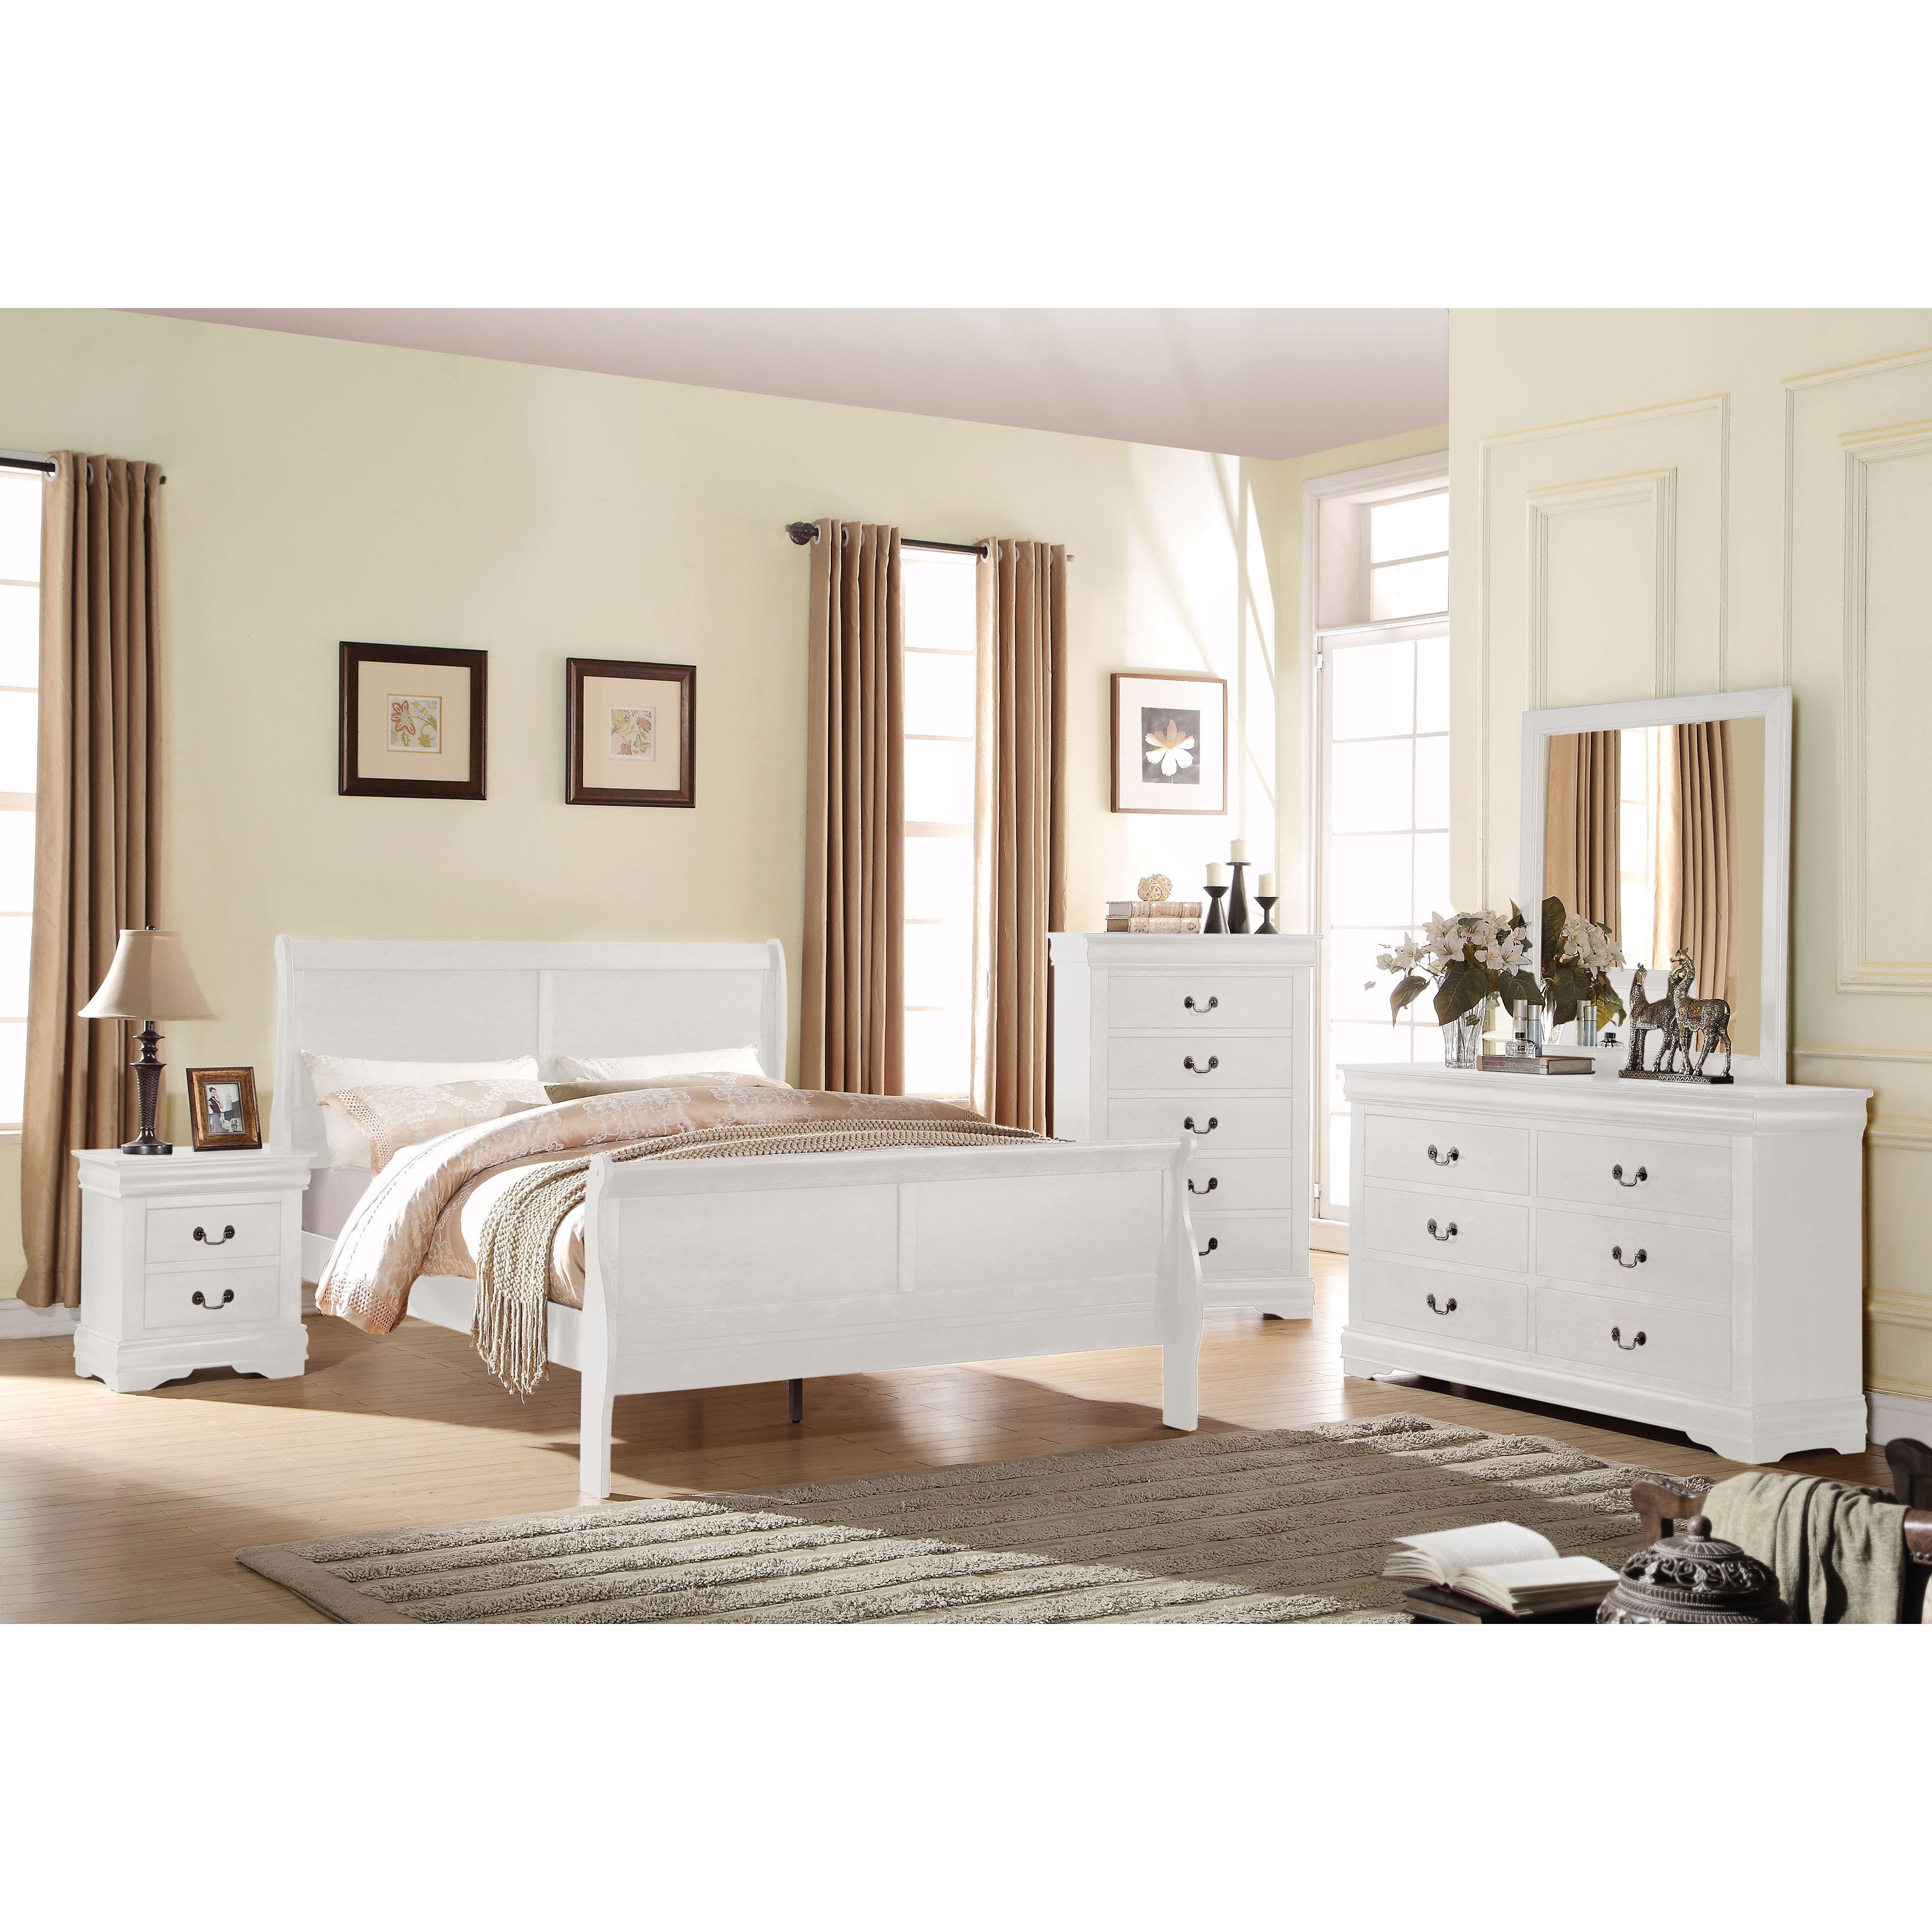 Acme Furniture Louis Philippe White 4 Piece Sleigh Bedroom Set 4e7f09f2 893c 45e4 83ac 9604060f9abe Top Result 50 Awesome Patio Furniture Naples